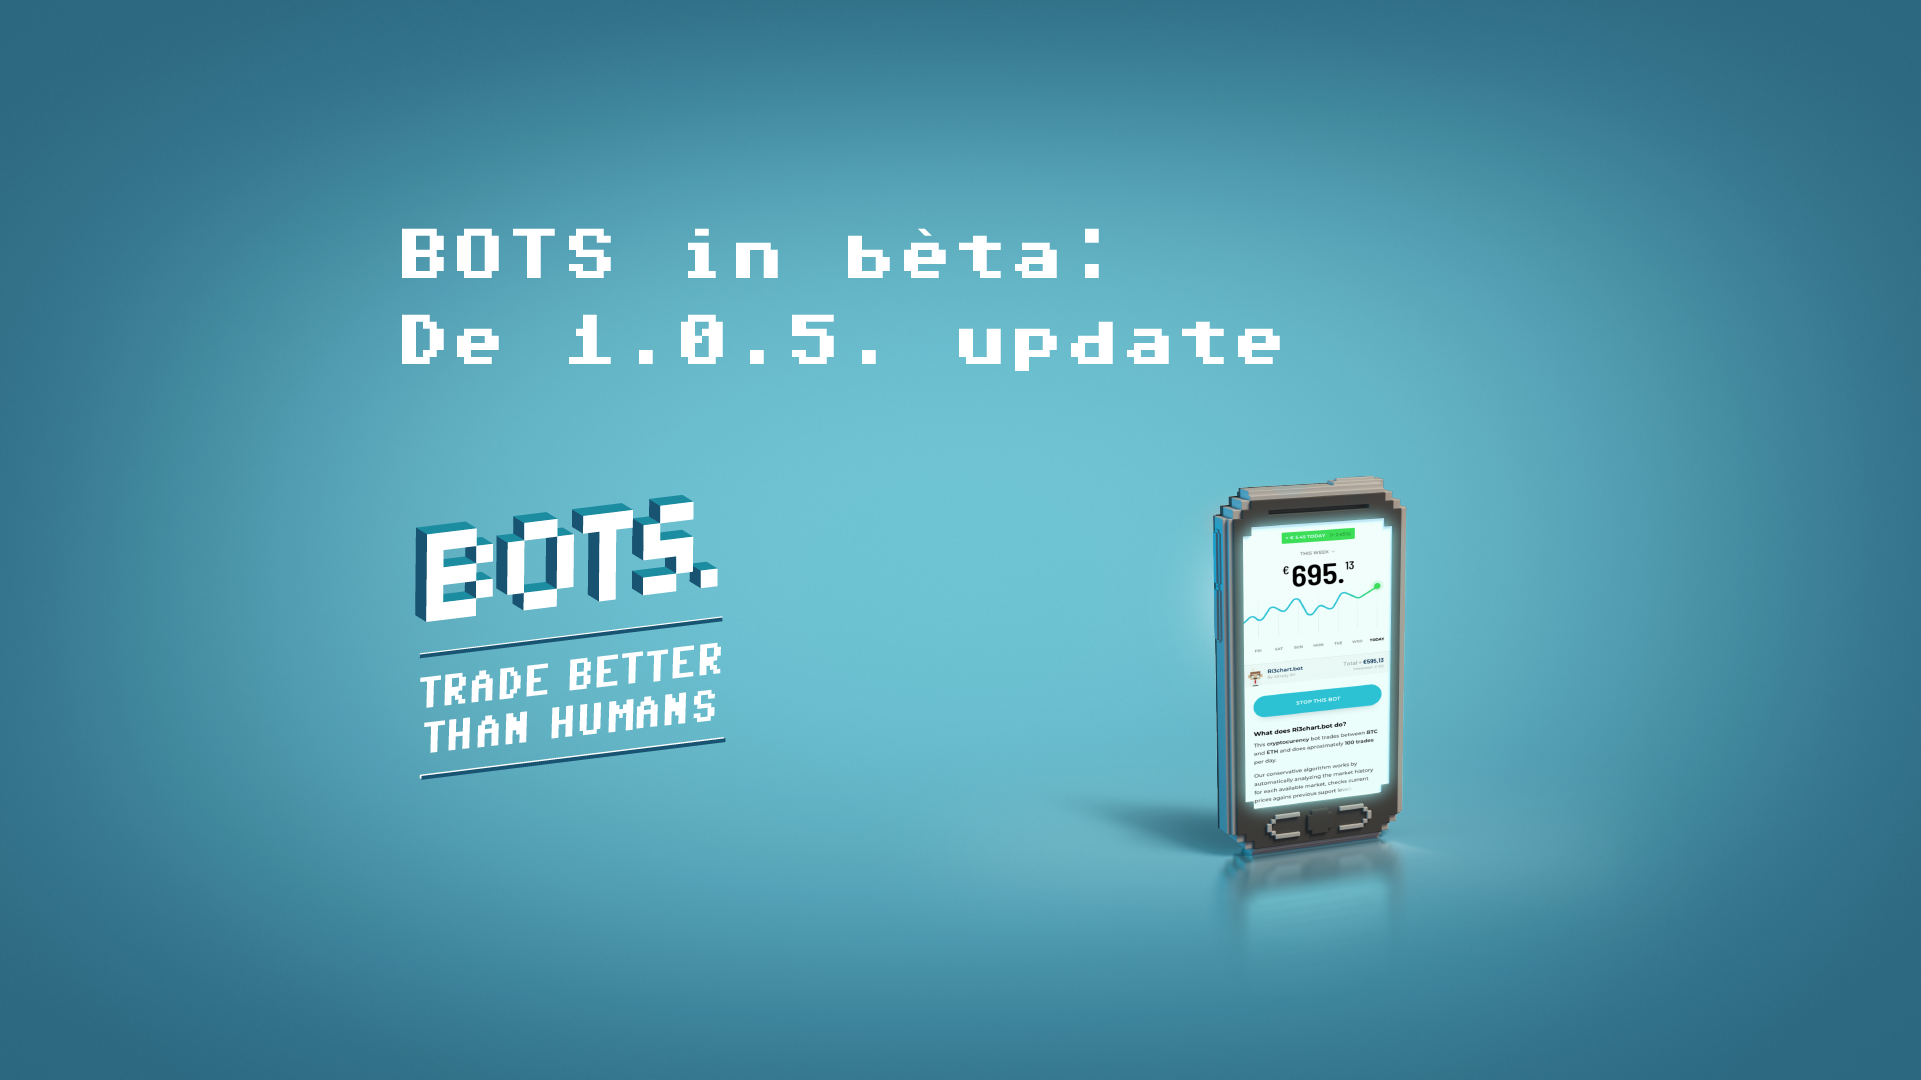 BOTS by RevenYOU | BOTS in beta: The 1.0.5. update